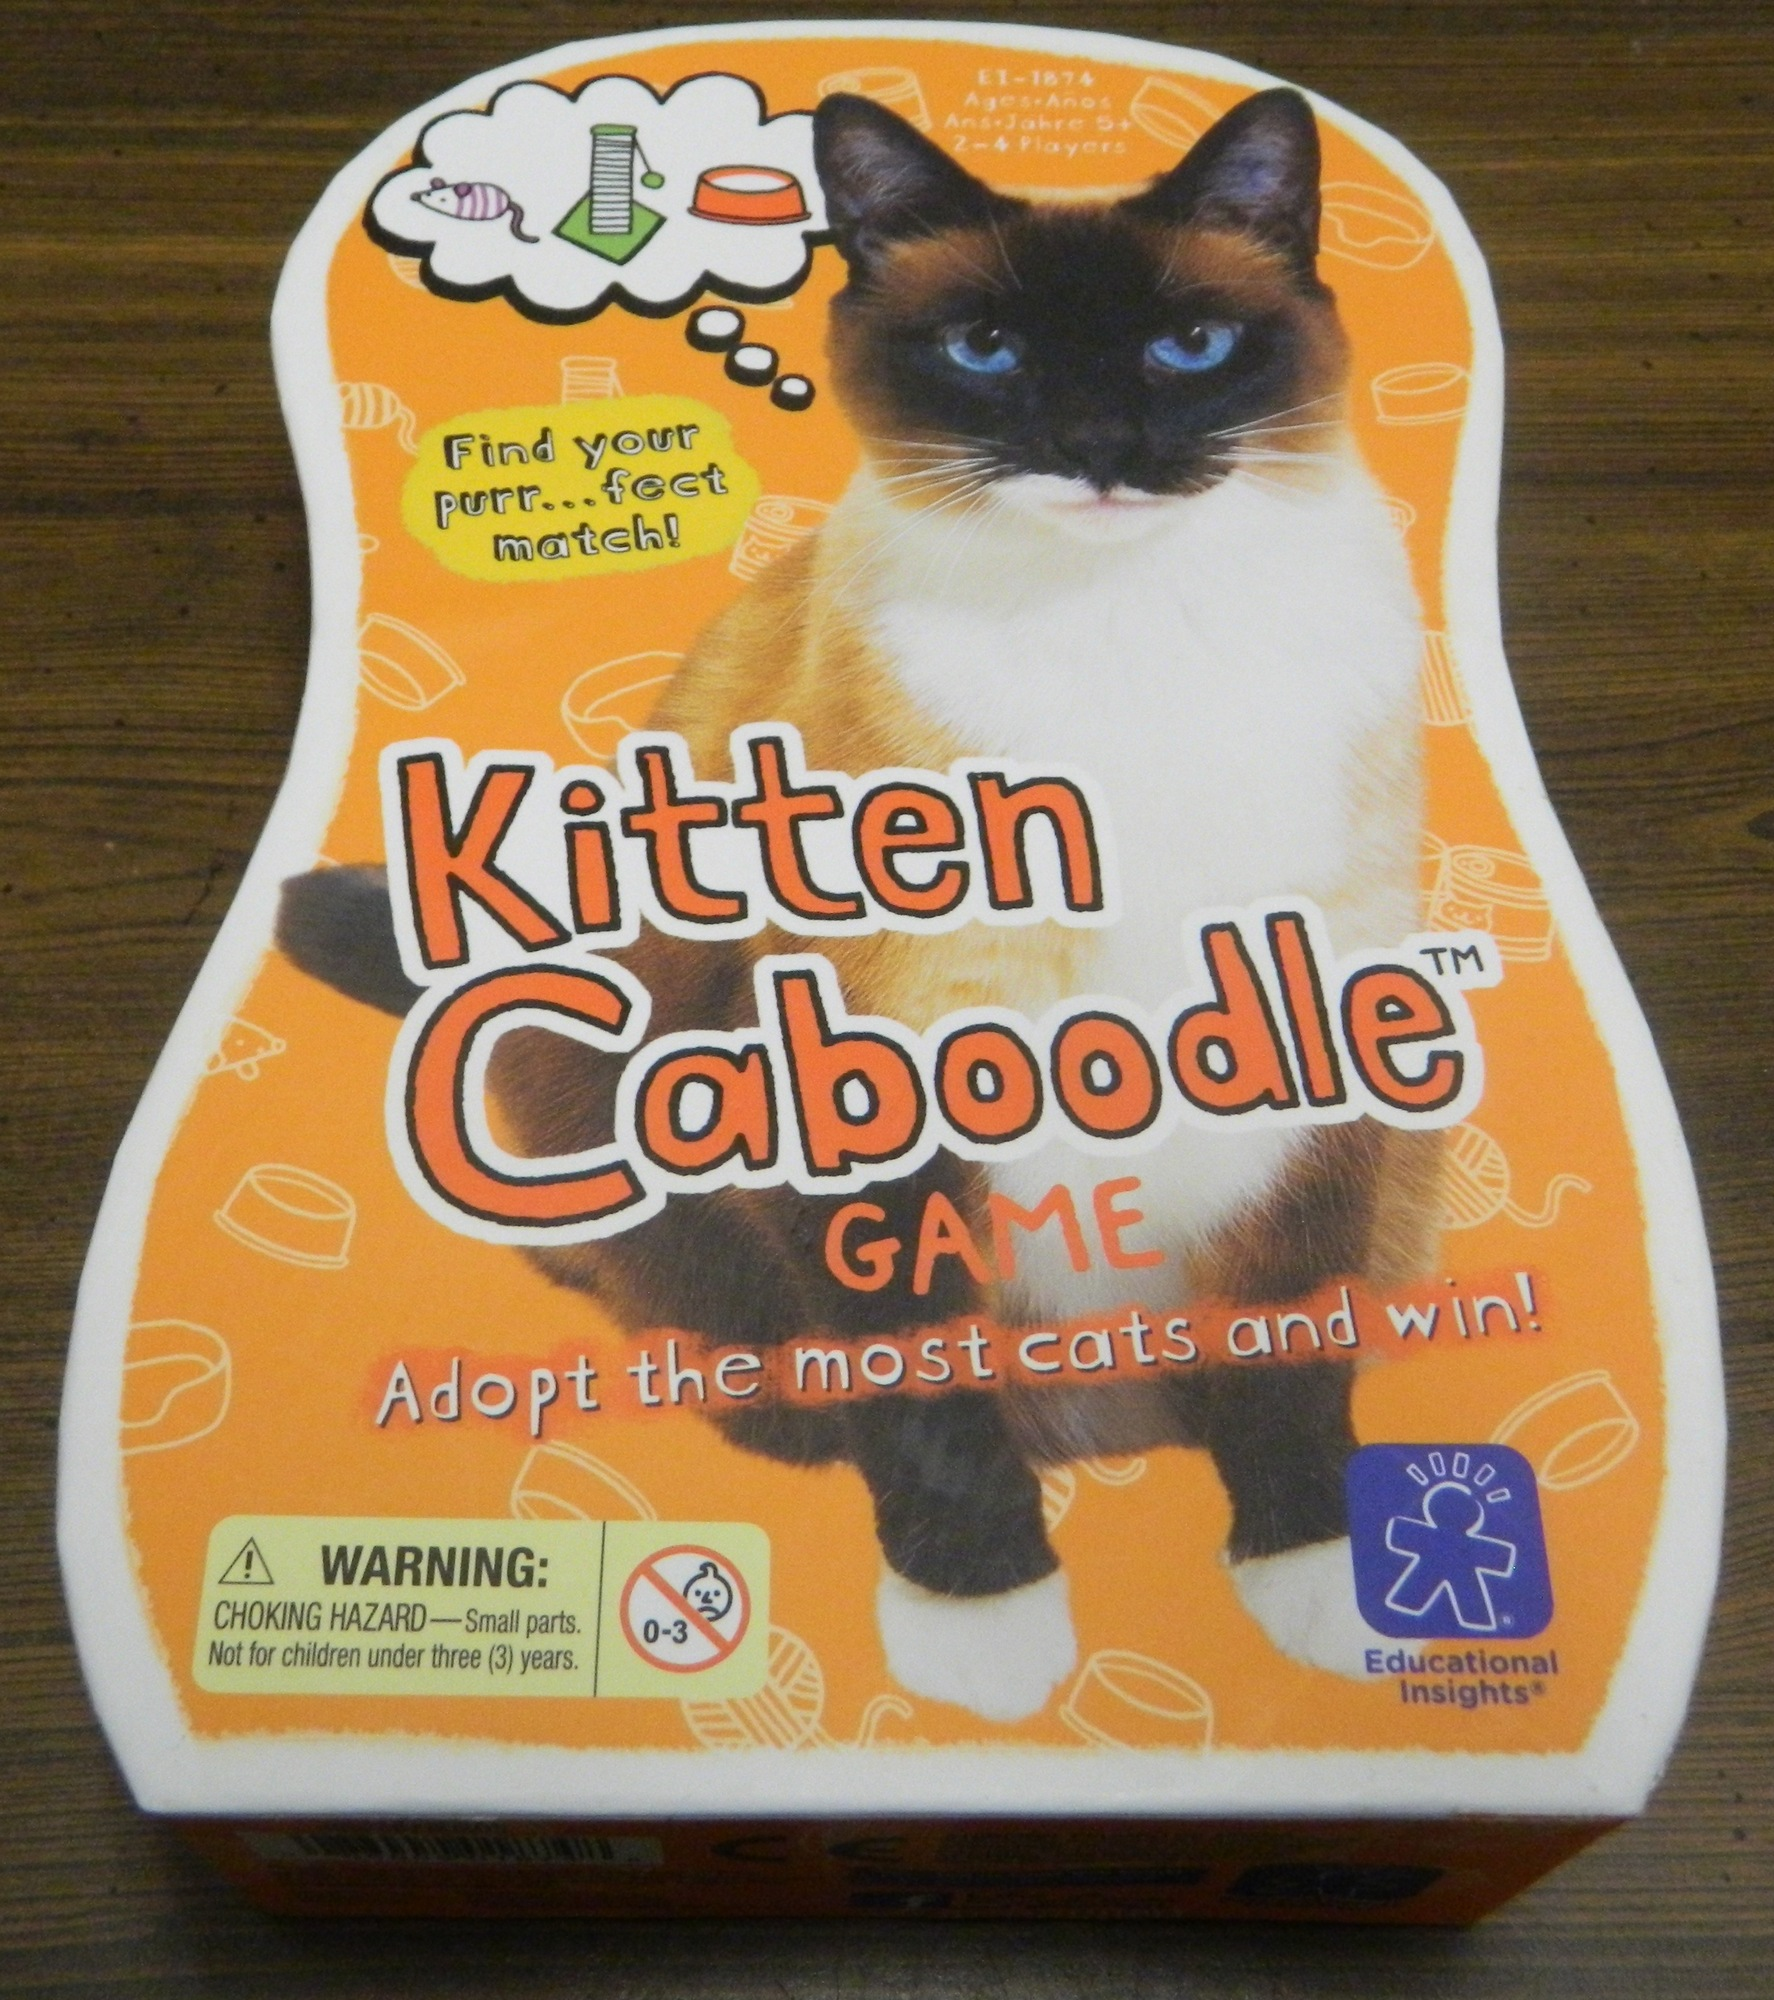 Box for Kitten Caboodle